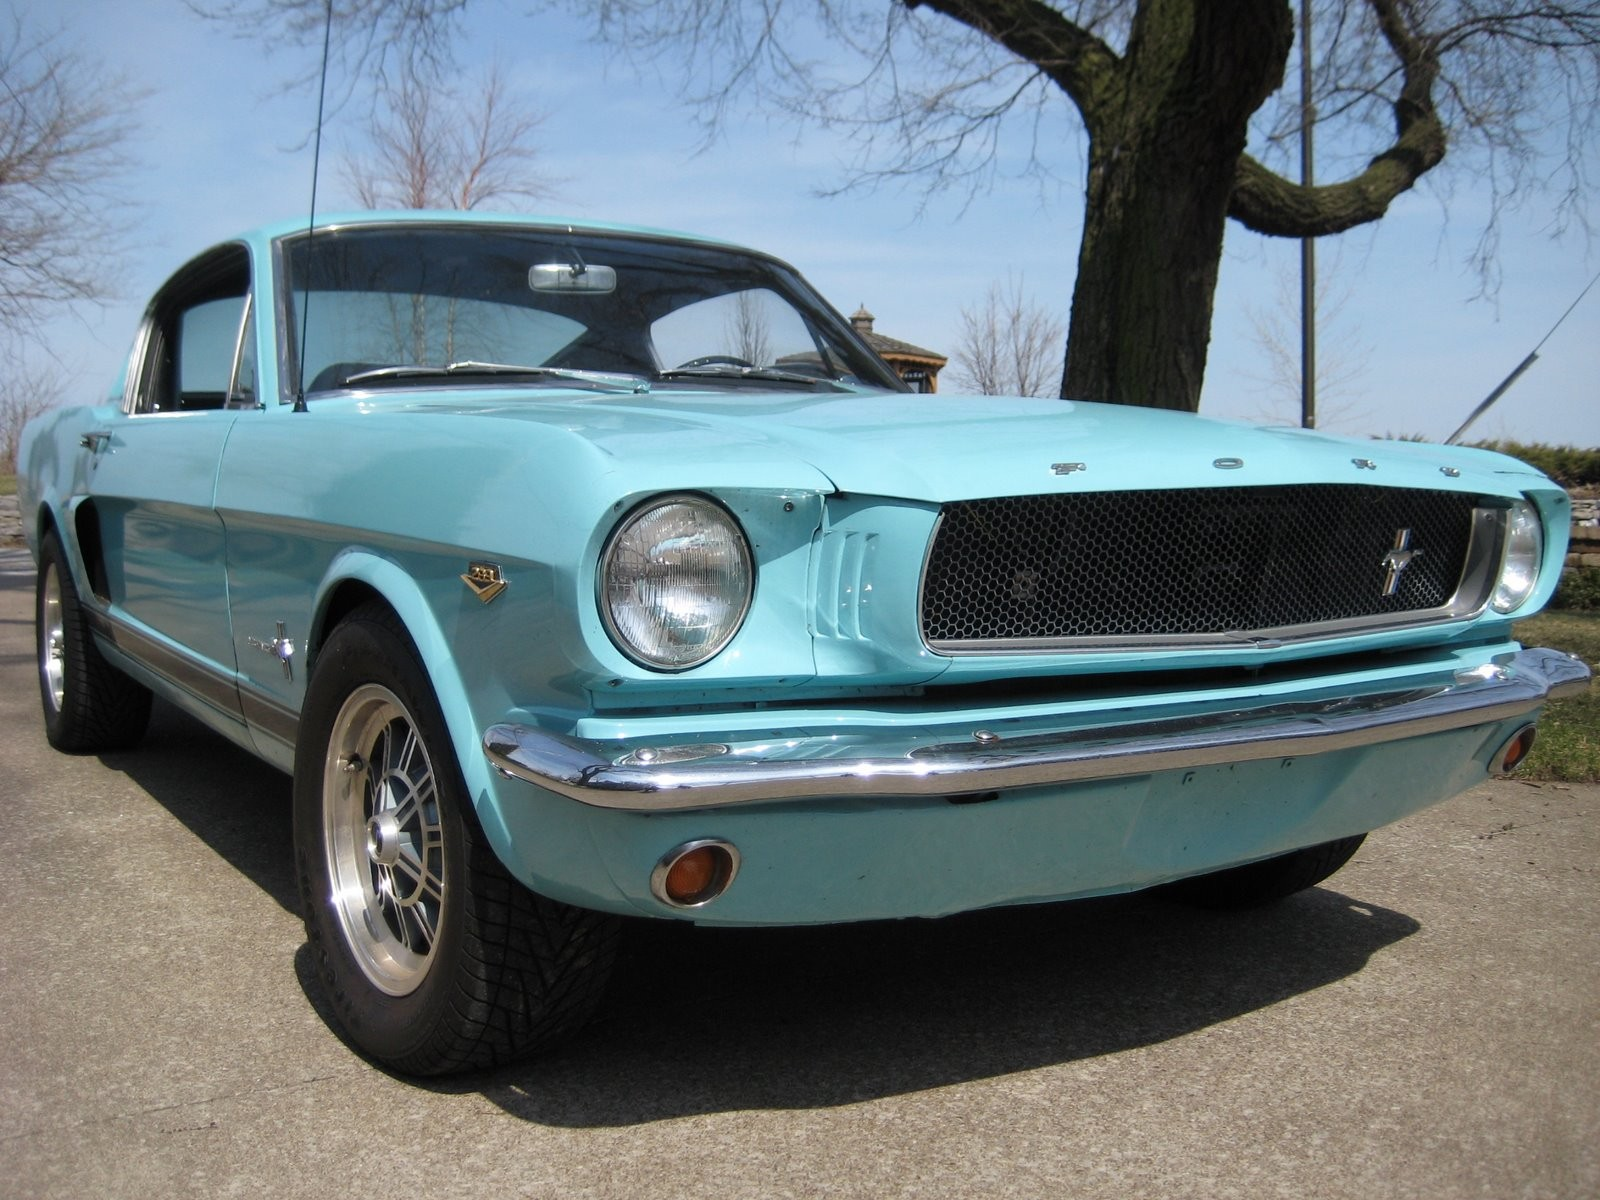 Ford Mustang Fastback photo